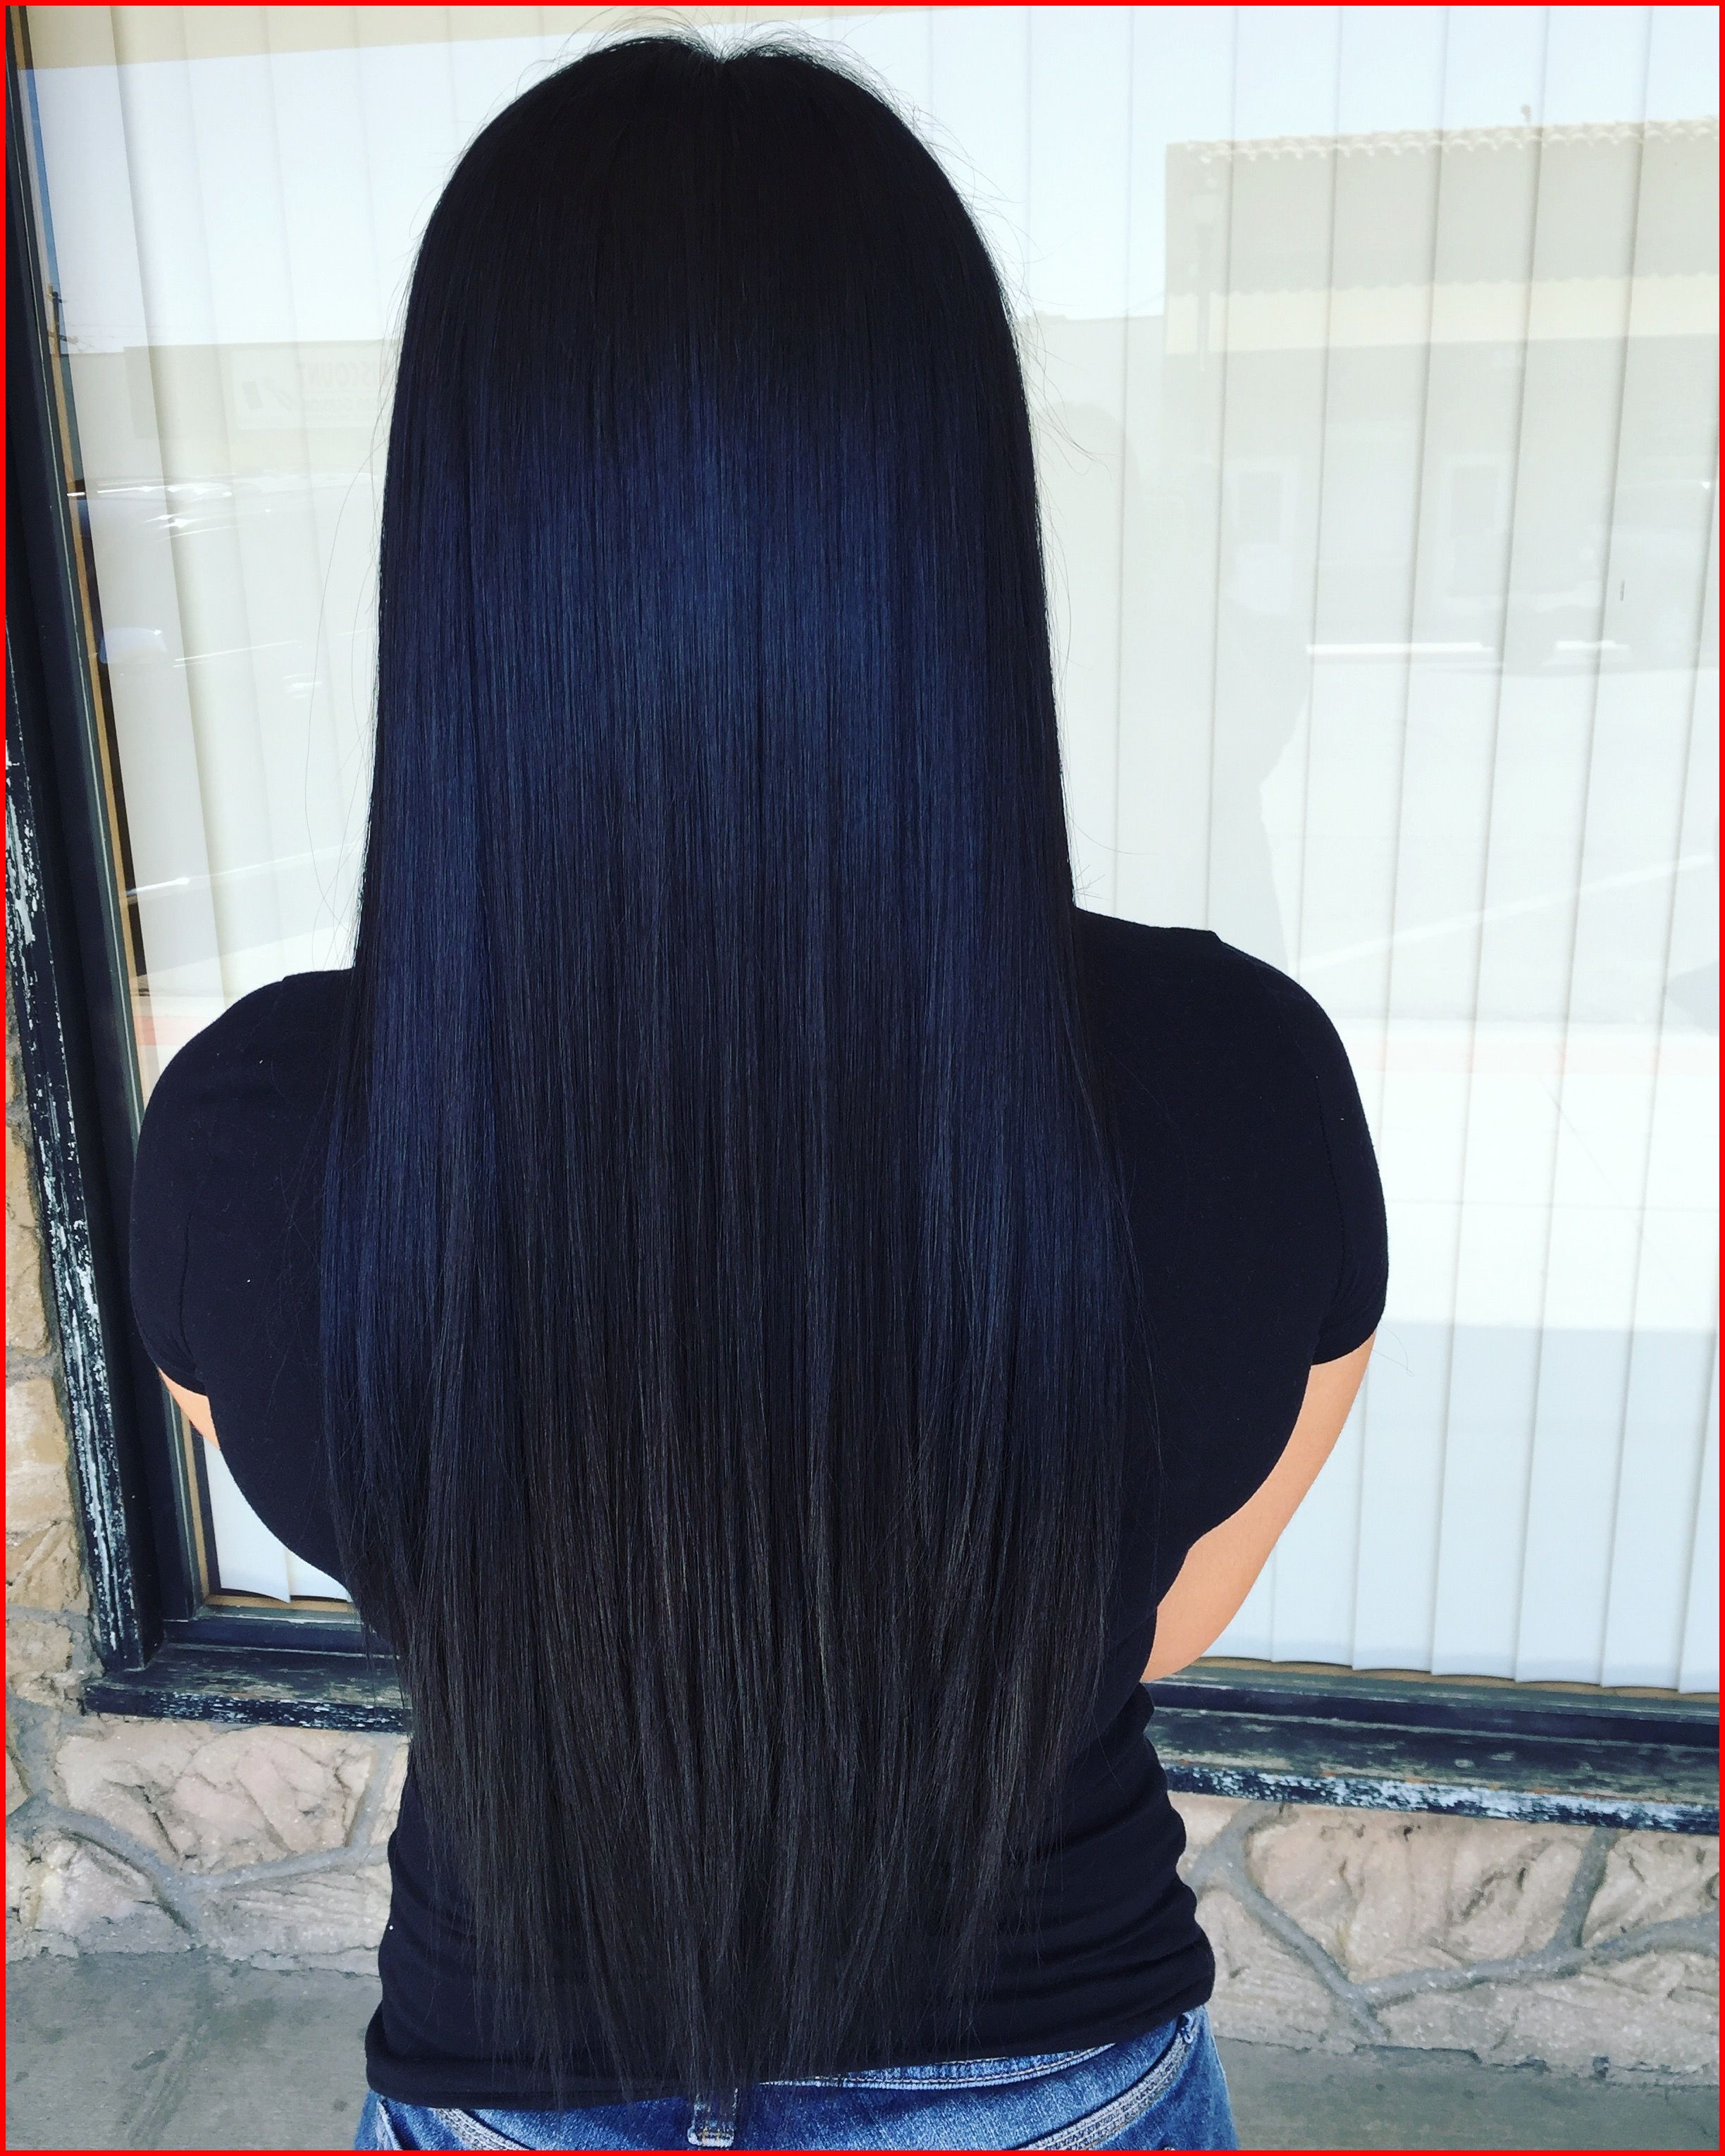 Image Result For Navy Blue Hair Color Hair Color For Black Hair